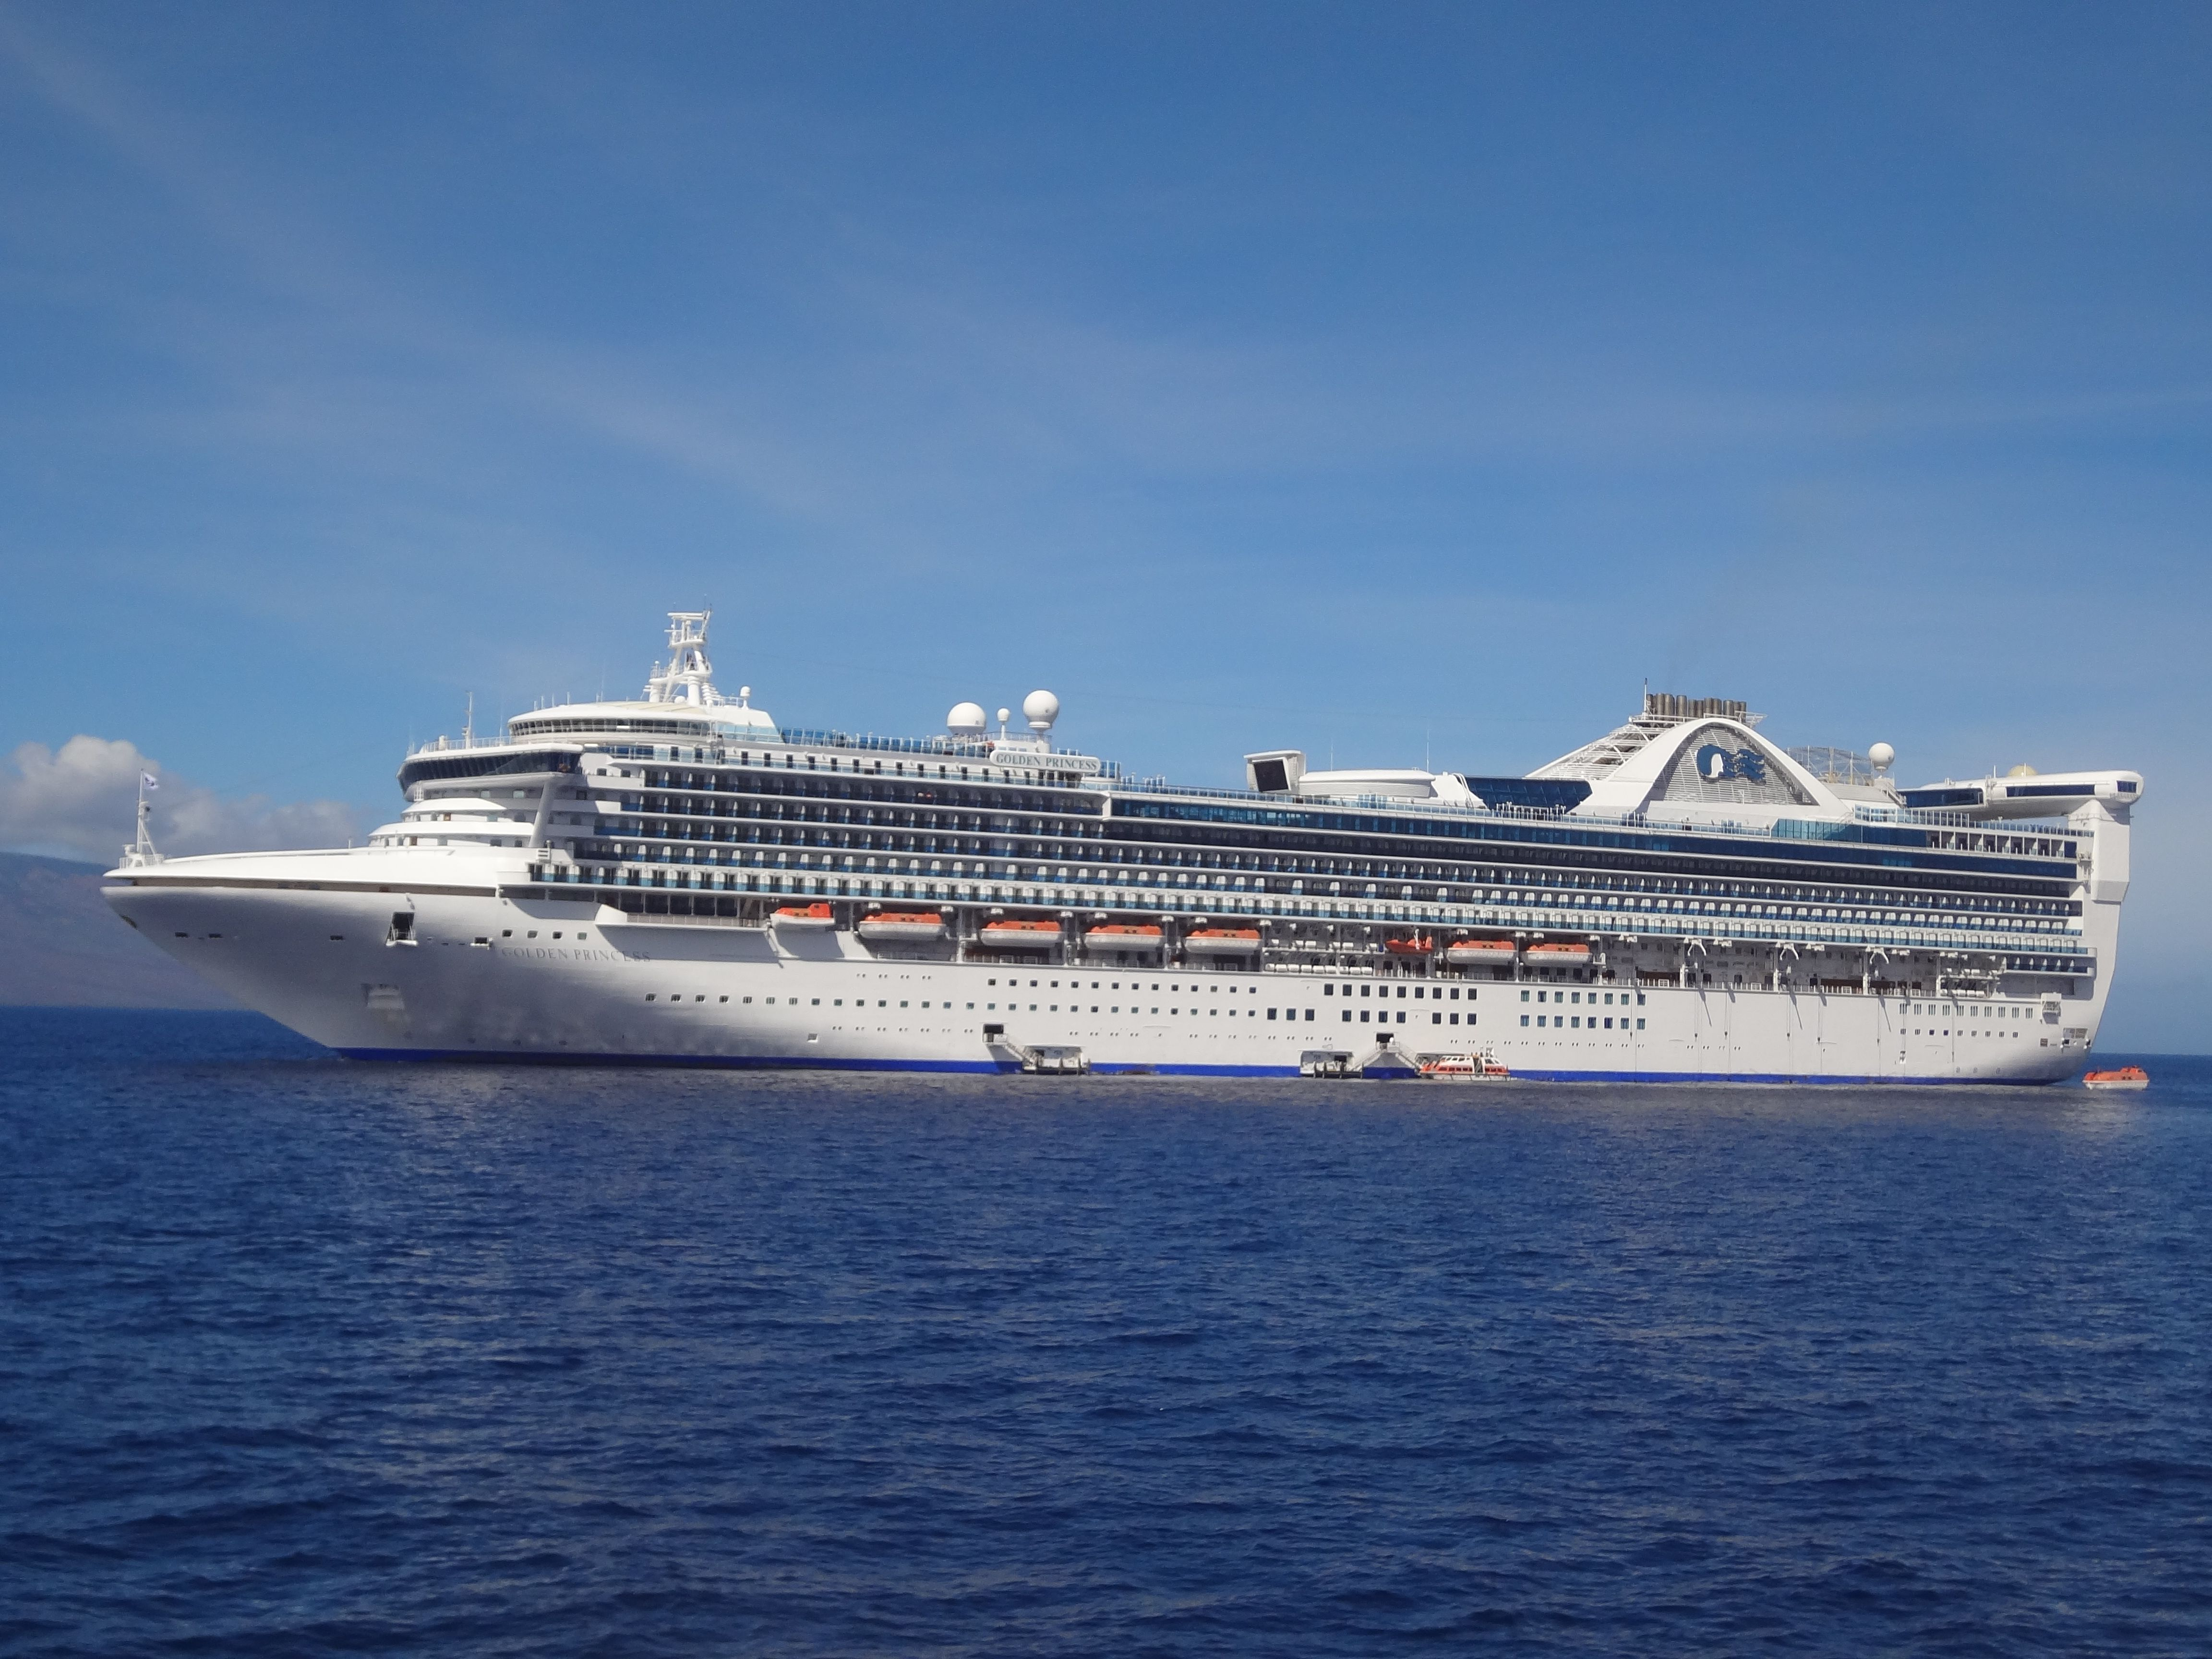 The Golden Princess cruise ship from our